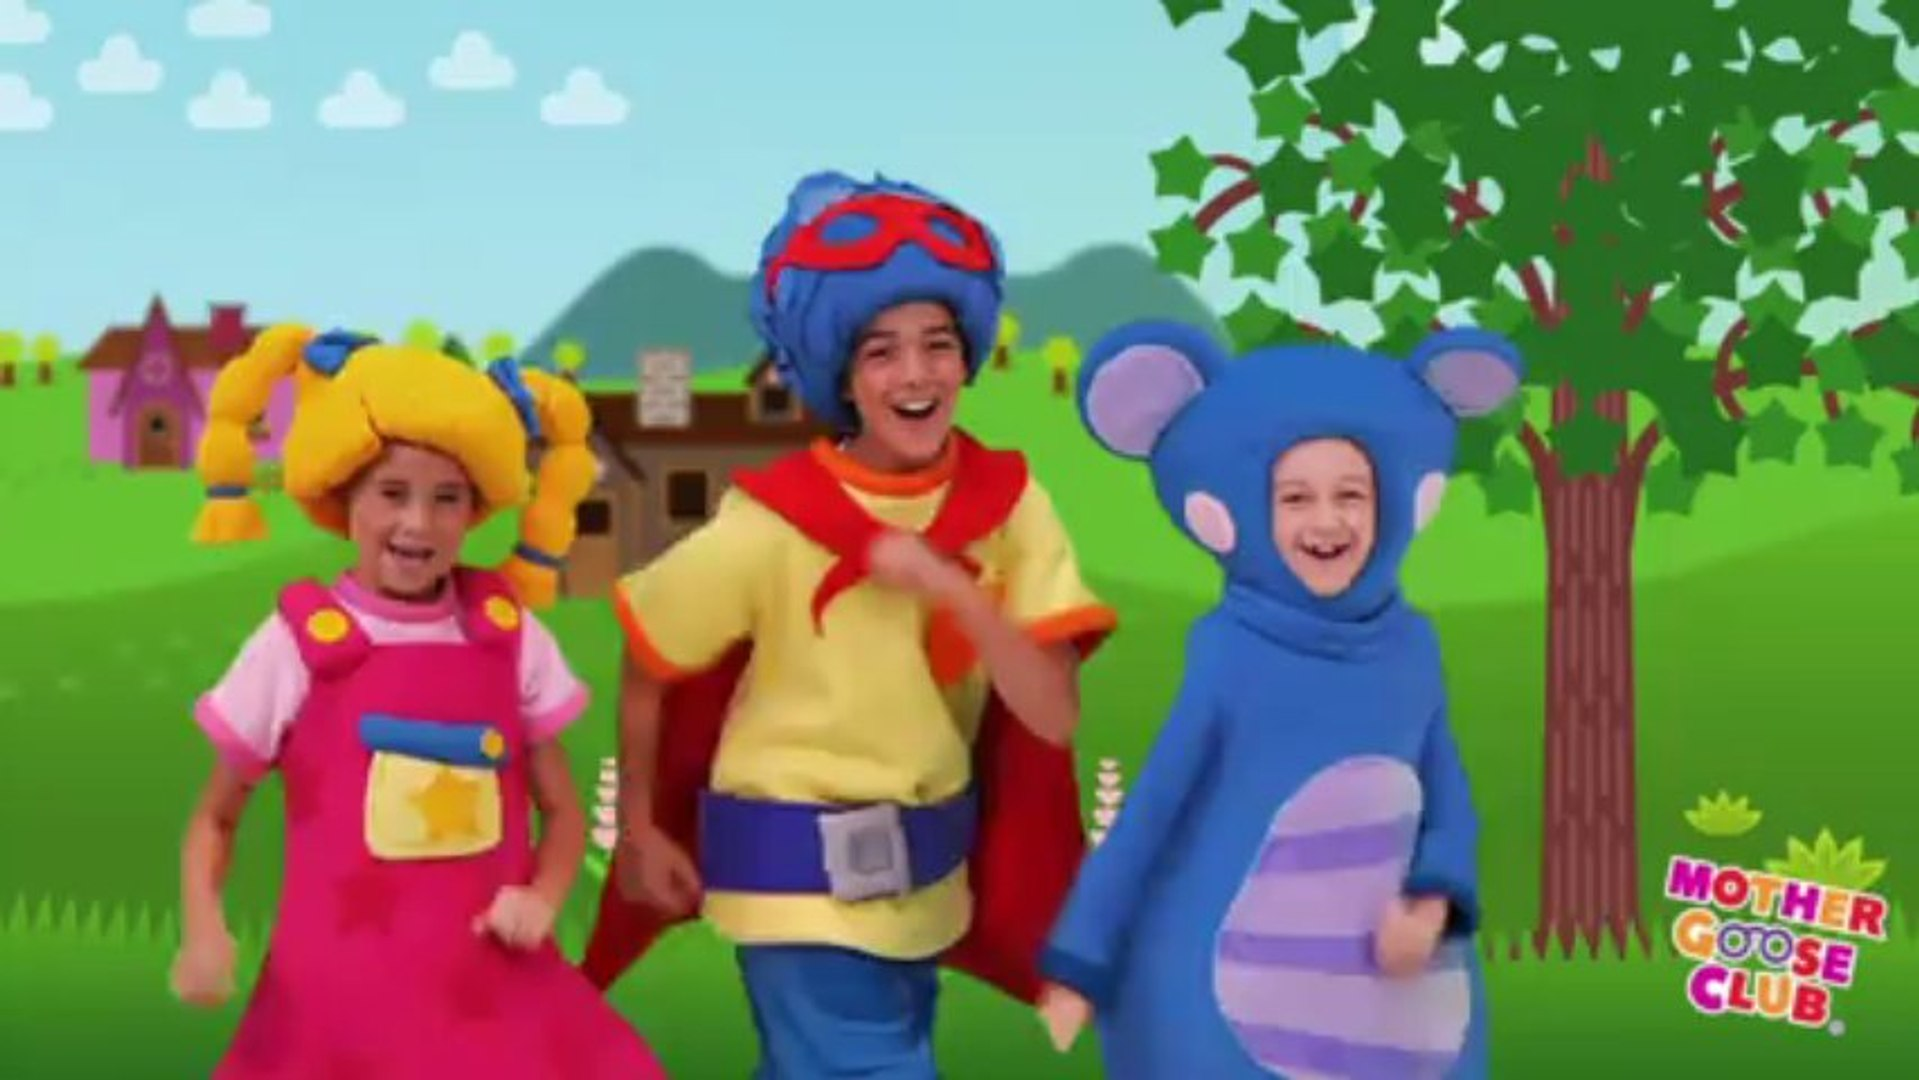 mother goose club rhymes download